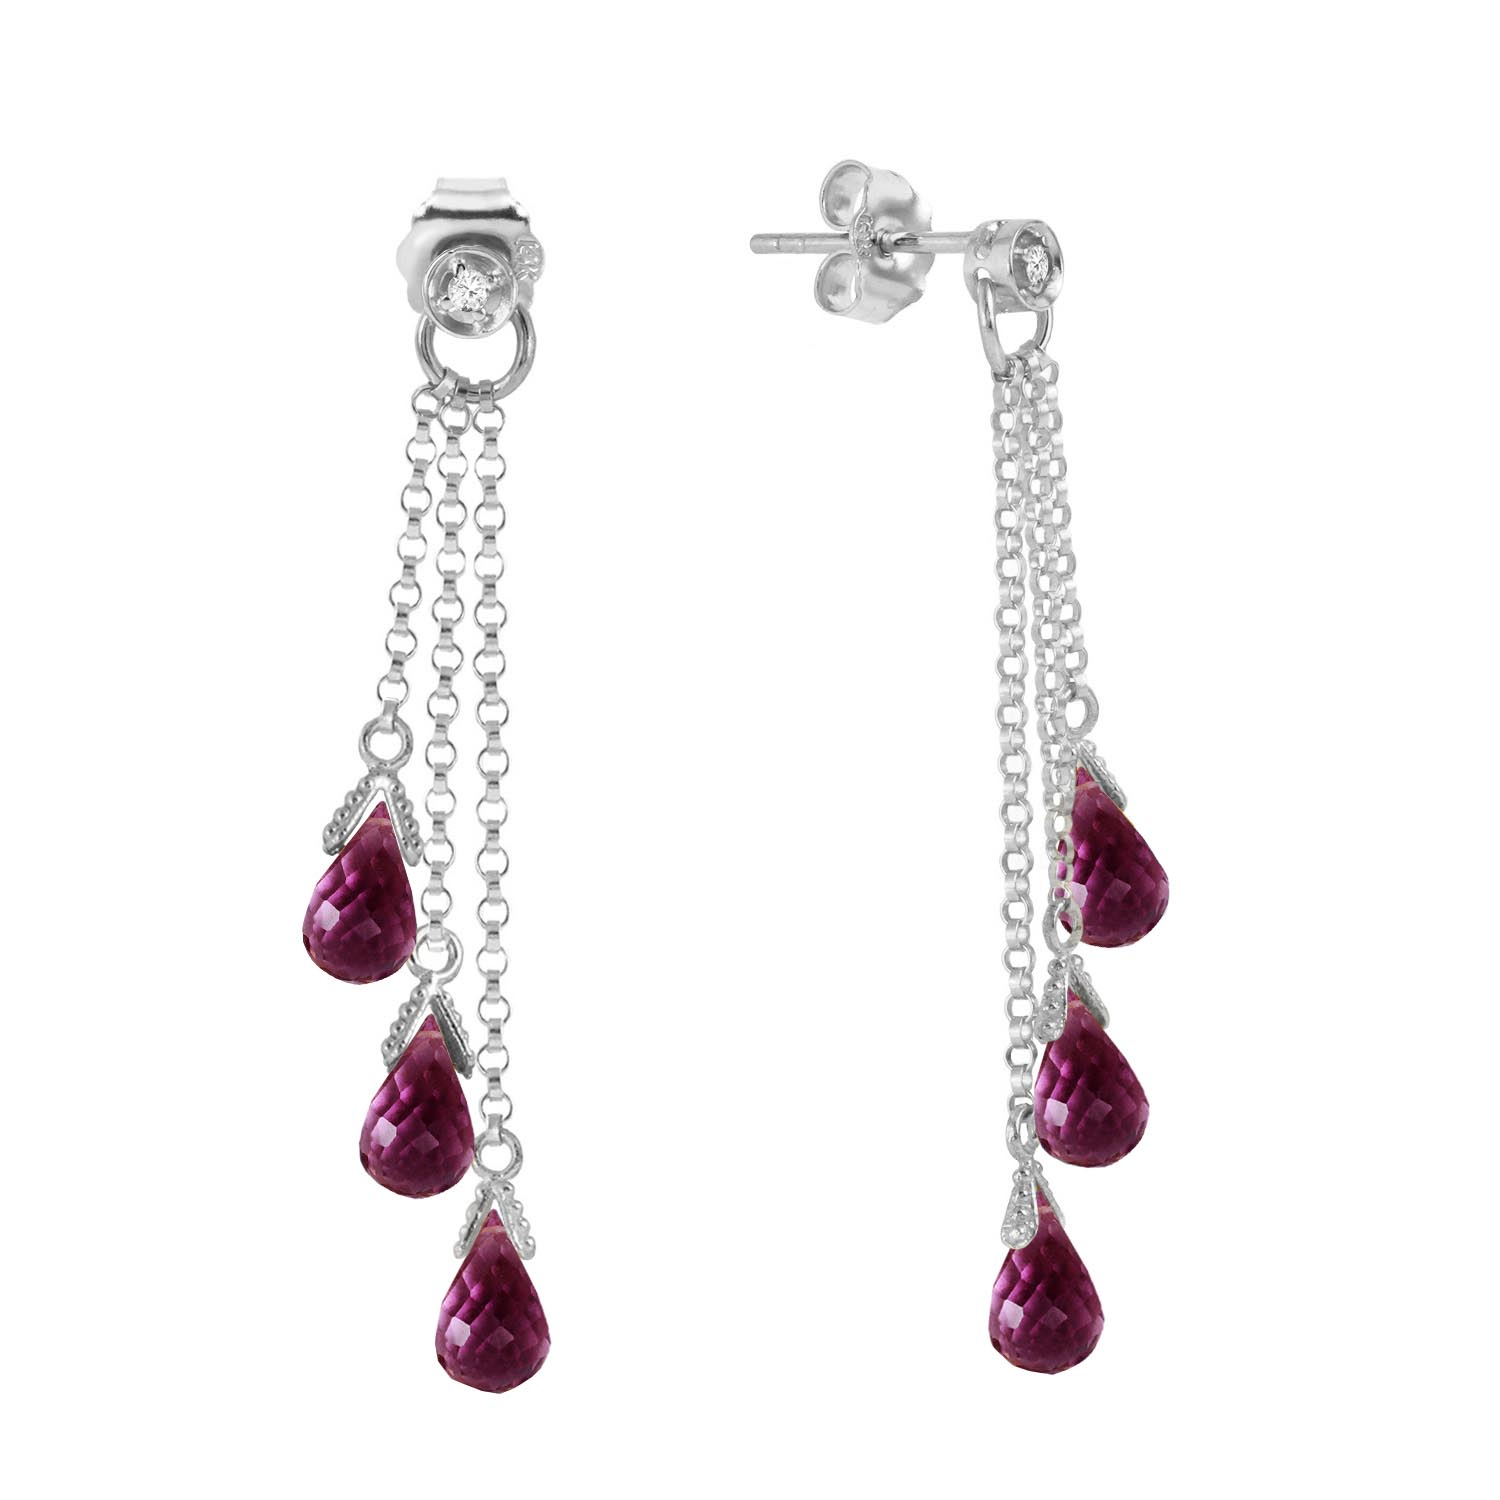 Amethyst and Diamond Trilogy Droplet Earrings 10.5ctw in 9ct White Gold